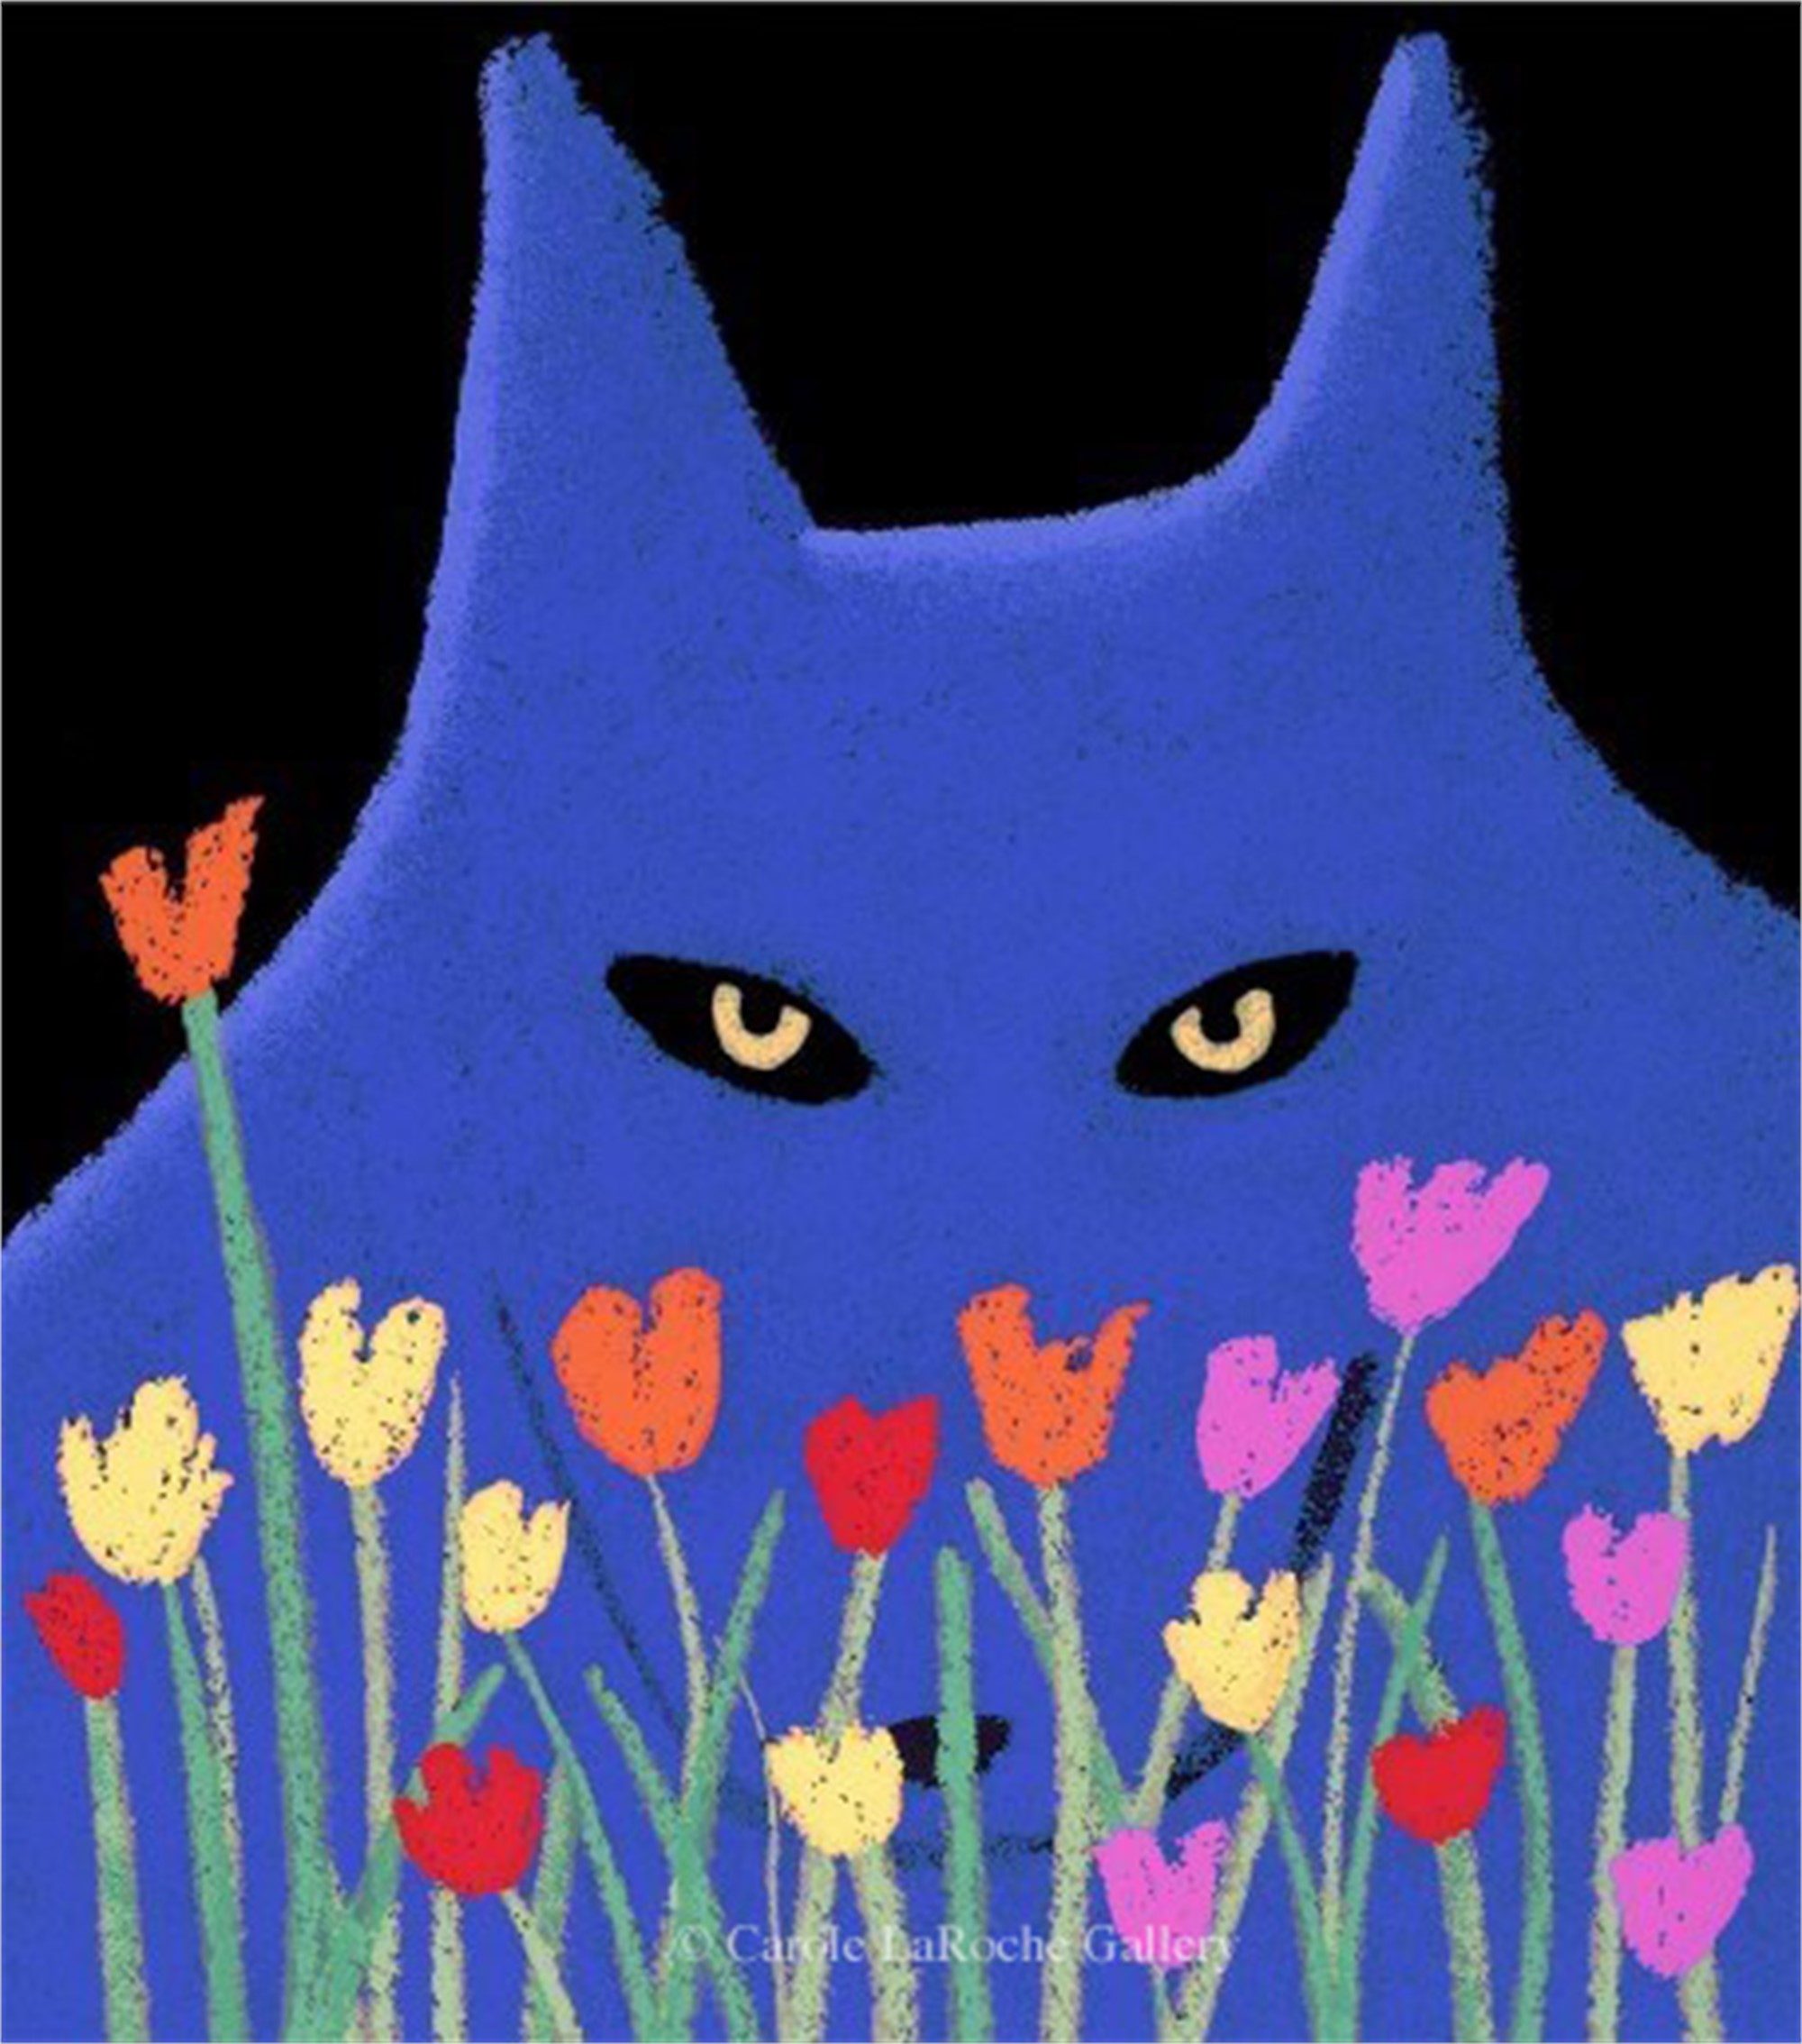 "SINGLE BLUE WOLF WITH FLOWERS - limited edition giclee on paper w/frame size of 23""x20"" by Carole LaRoche"